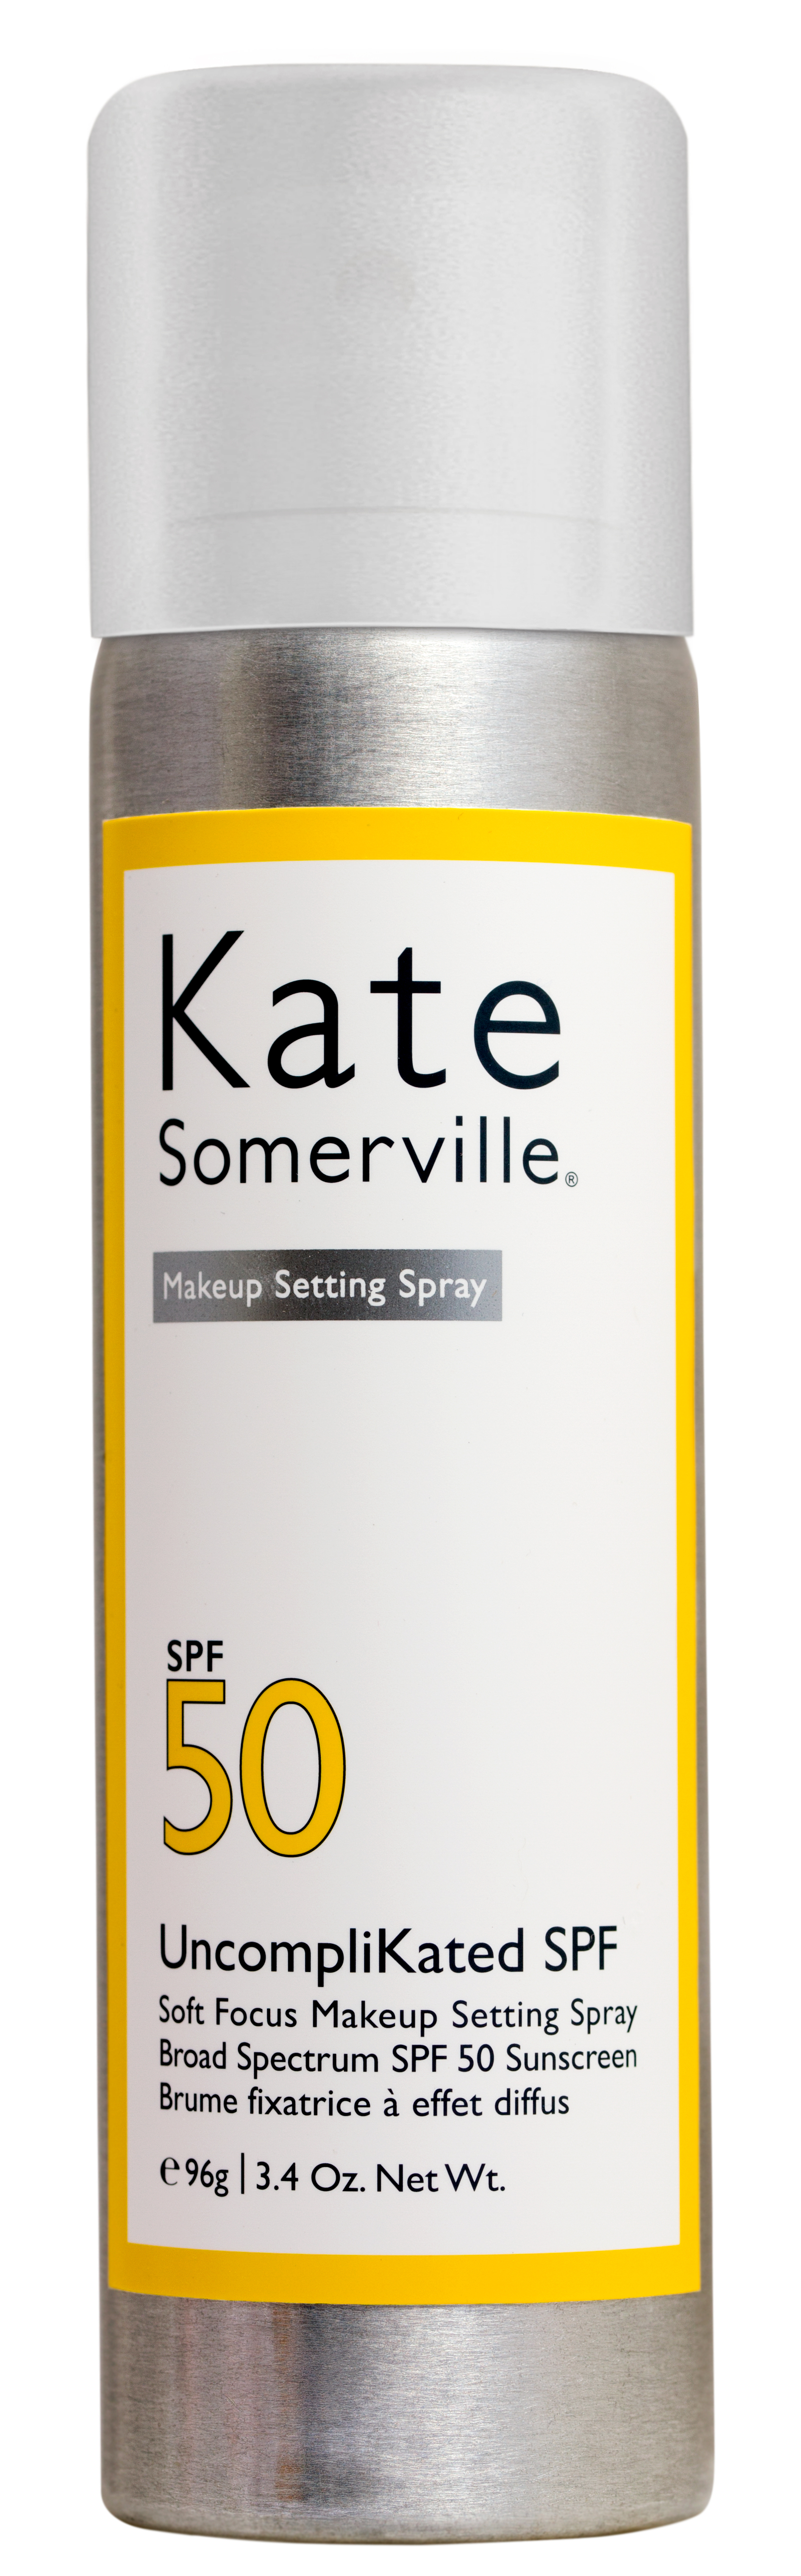 Kate Somerville, one of the best multitasking beauty products